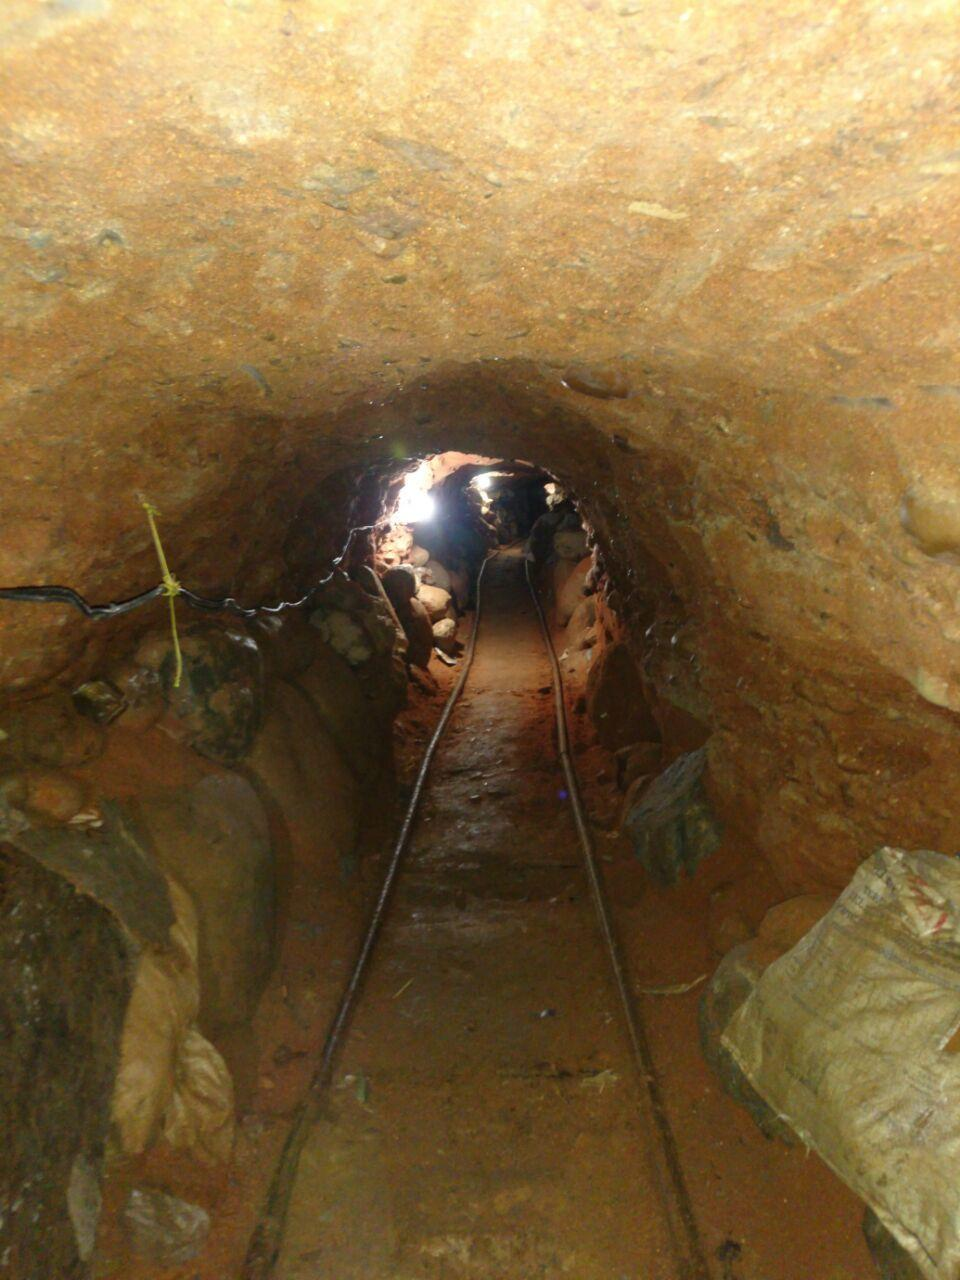 Mexican police find border tunnel with light, ventilation